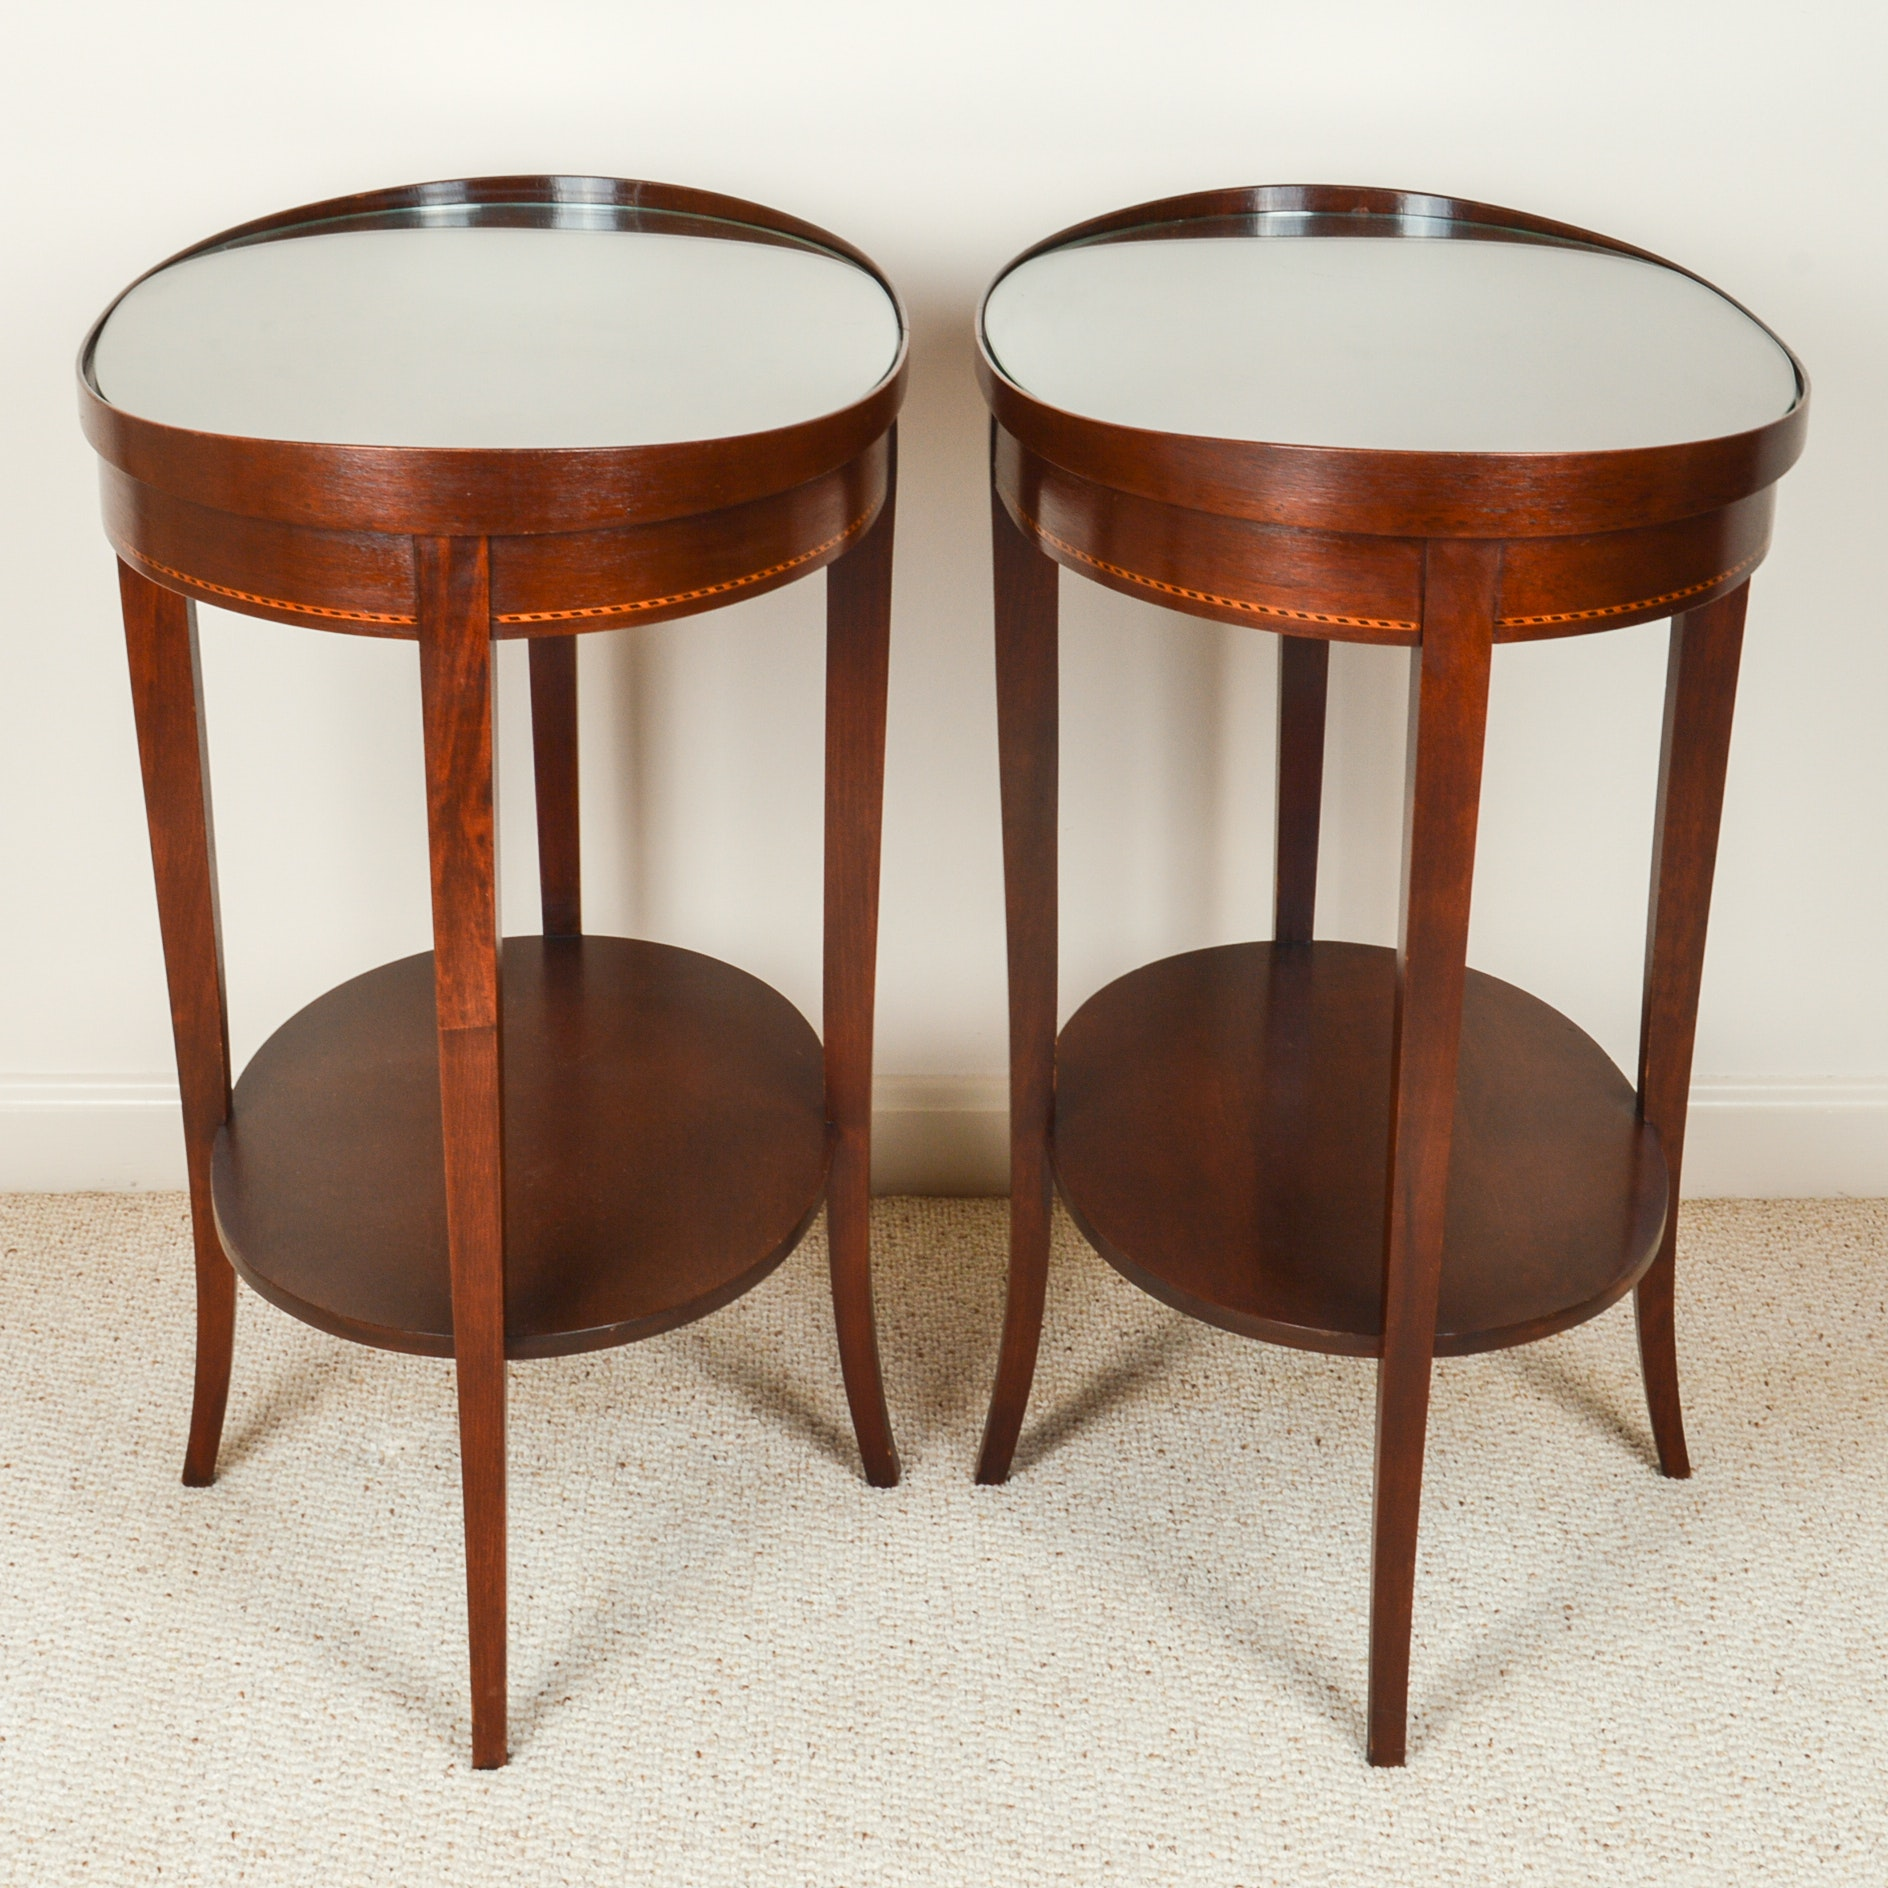 Pair of Oval End Tables